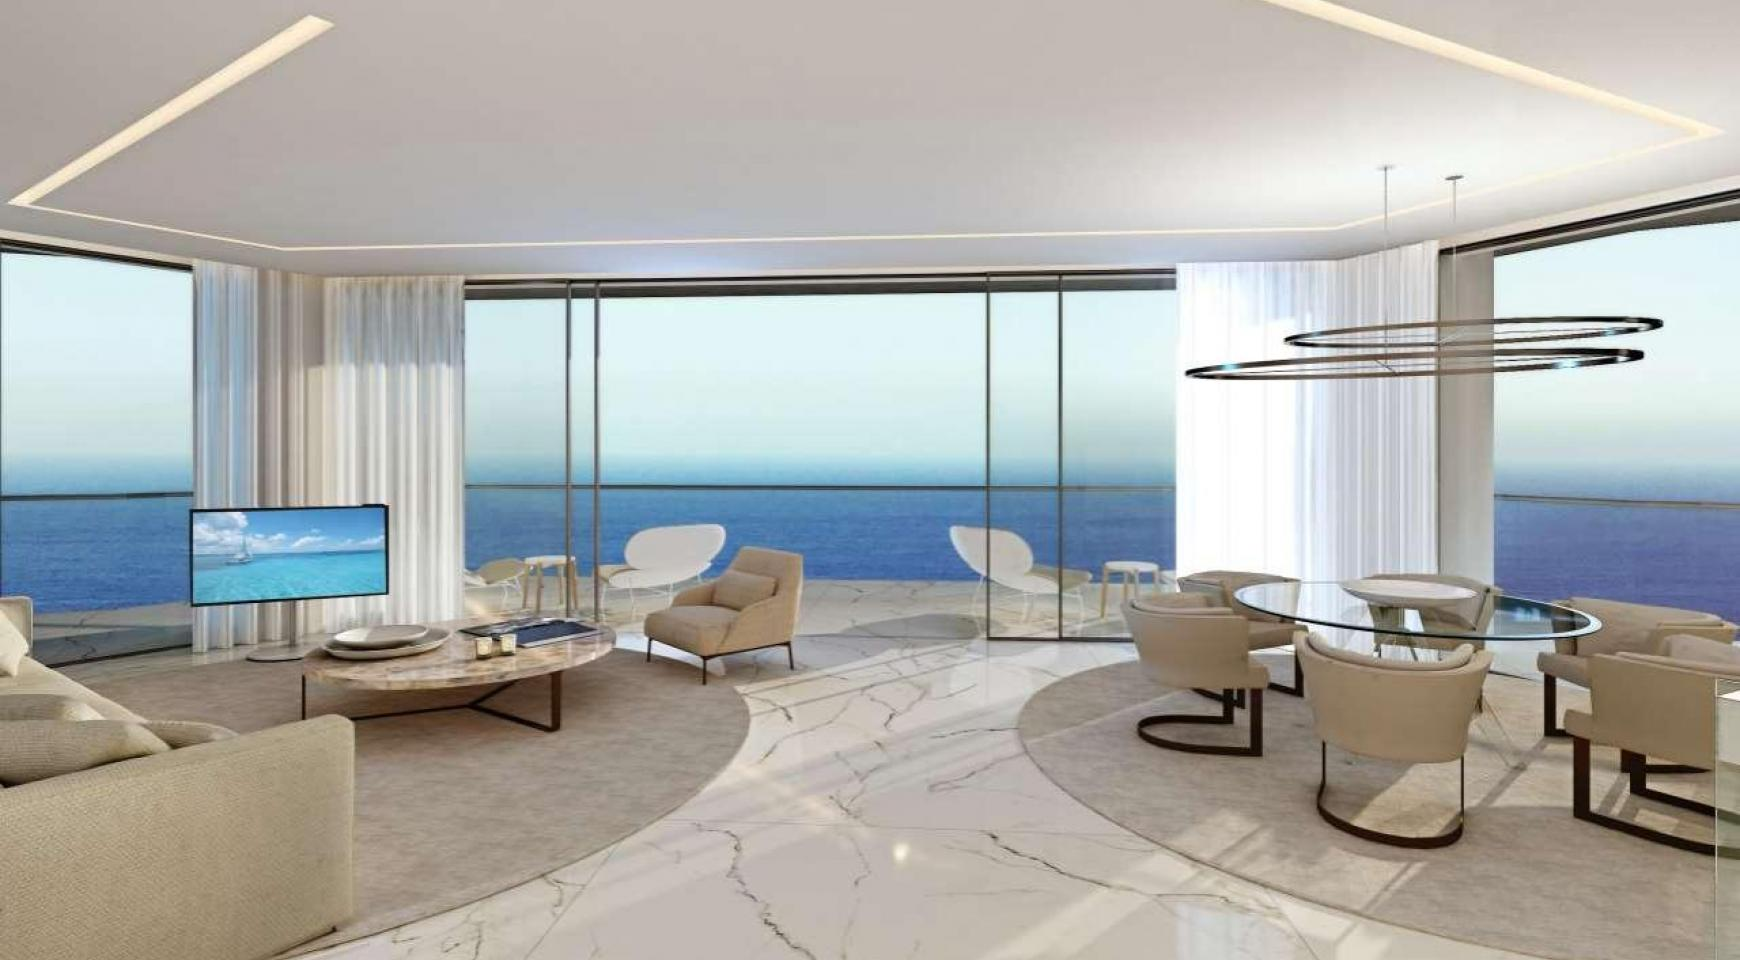 Luxury 3 Bedroom Apartment in a New Project by the Sea in the City Centre - 7